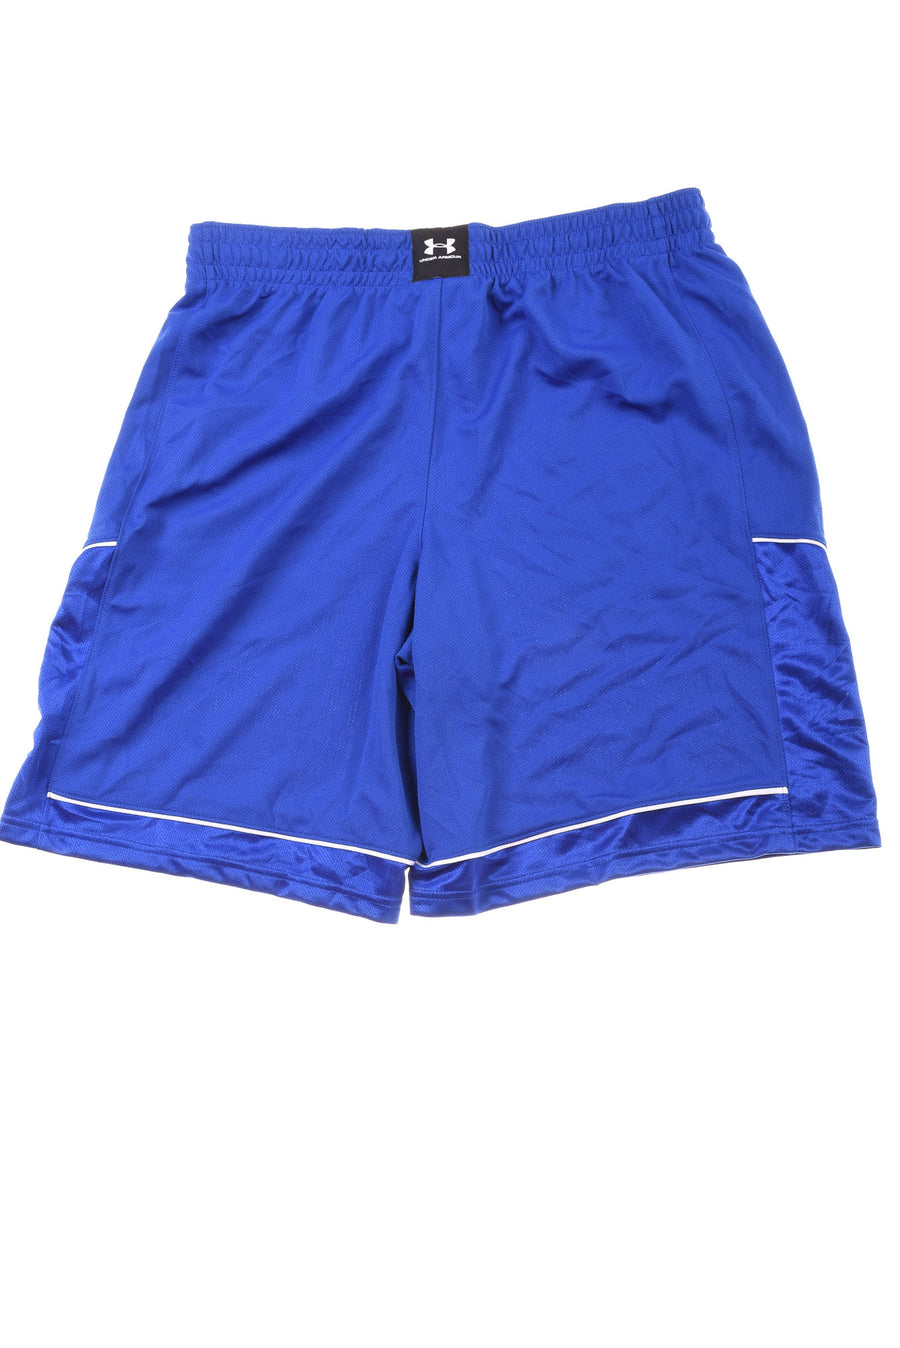 USED Under Armour Men's Shorts X-Large Blue